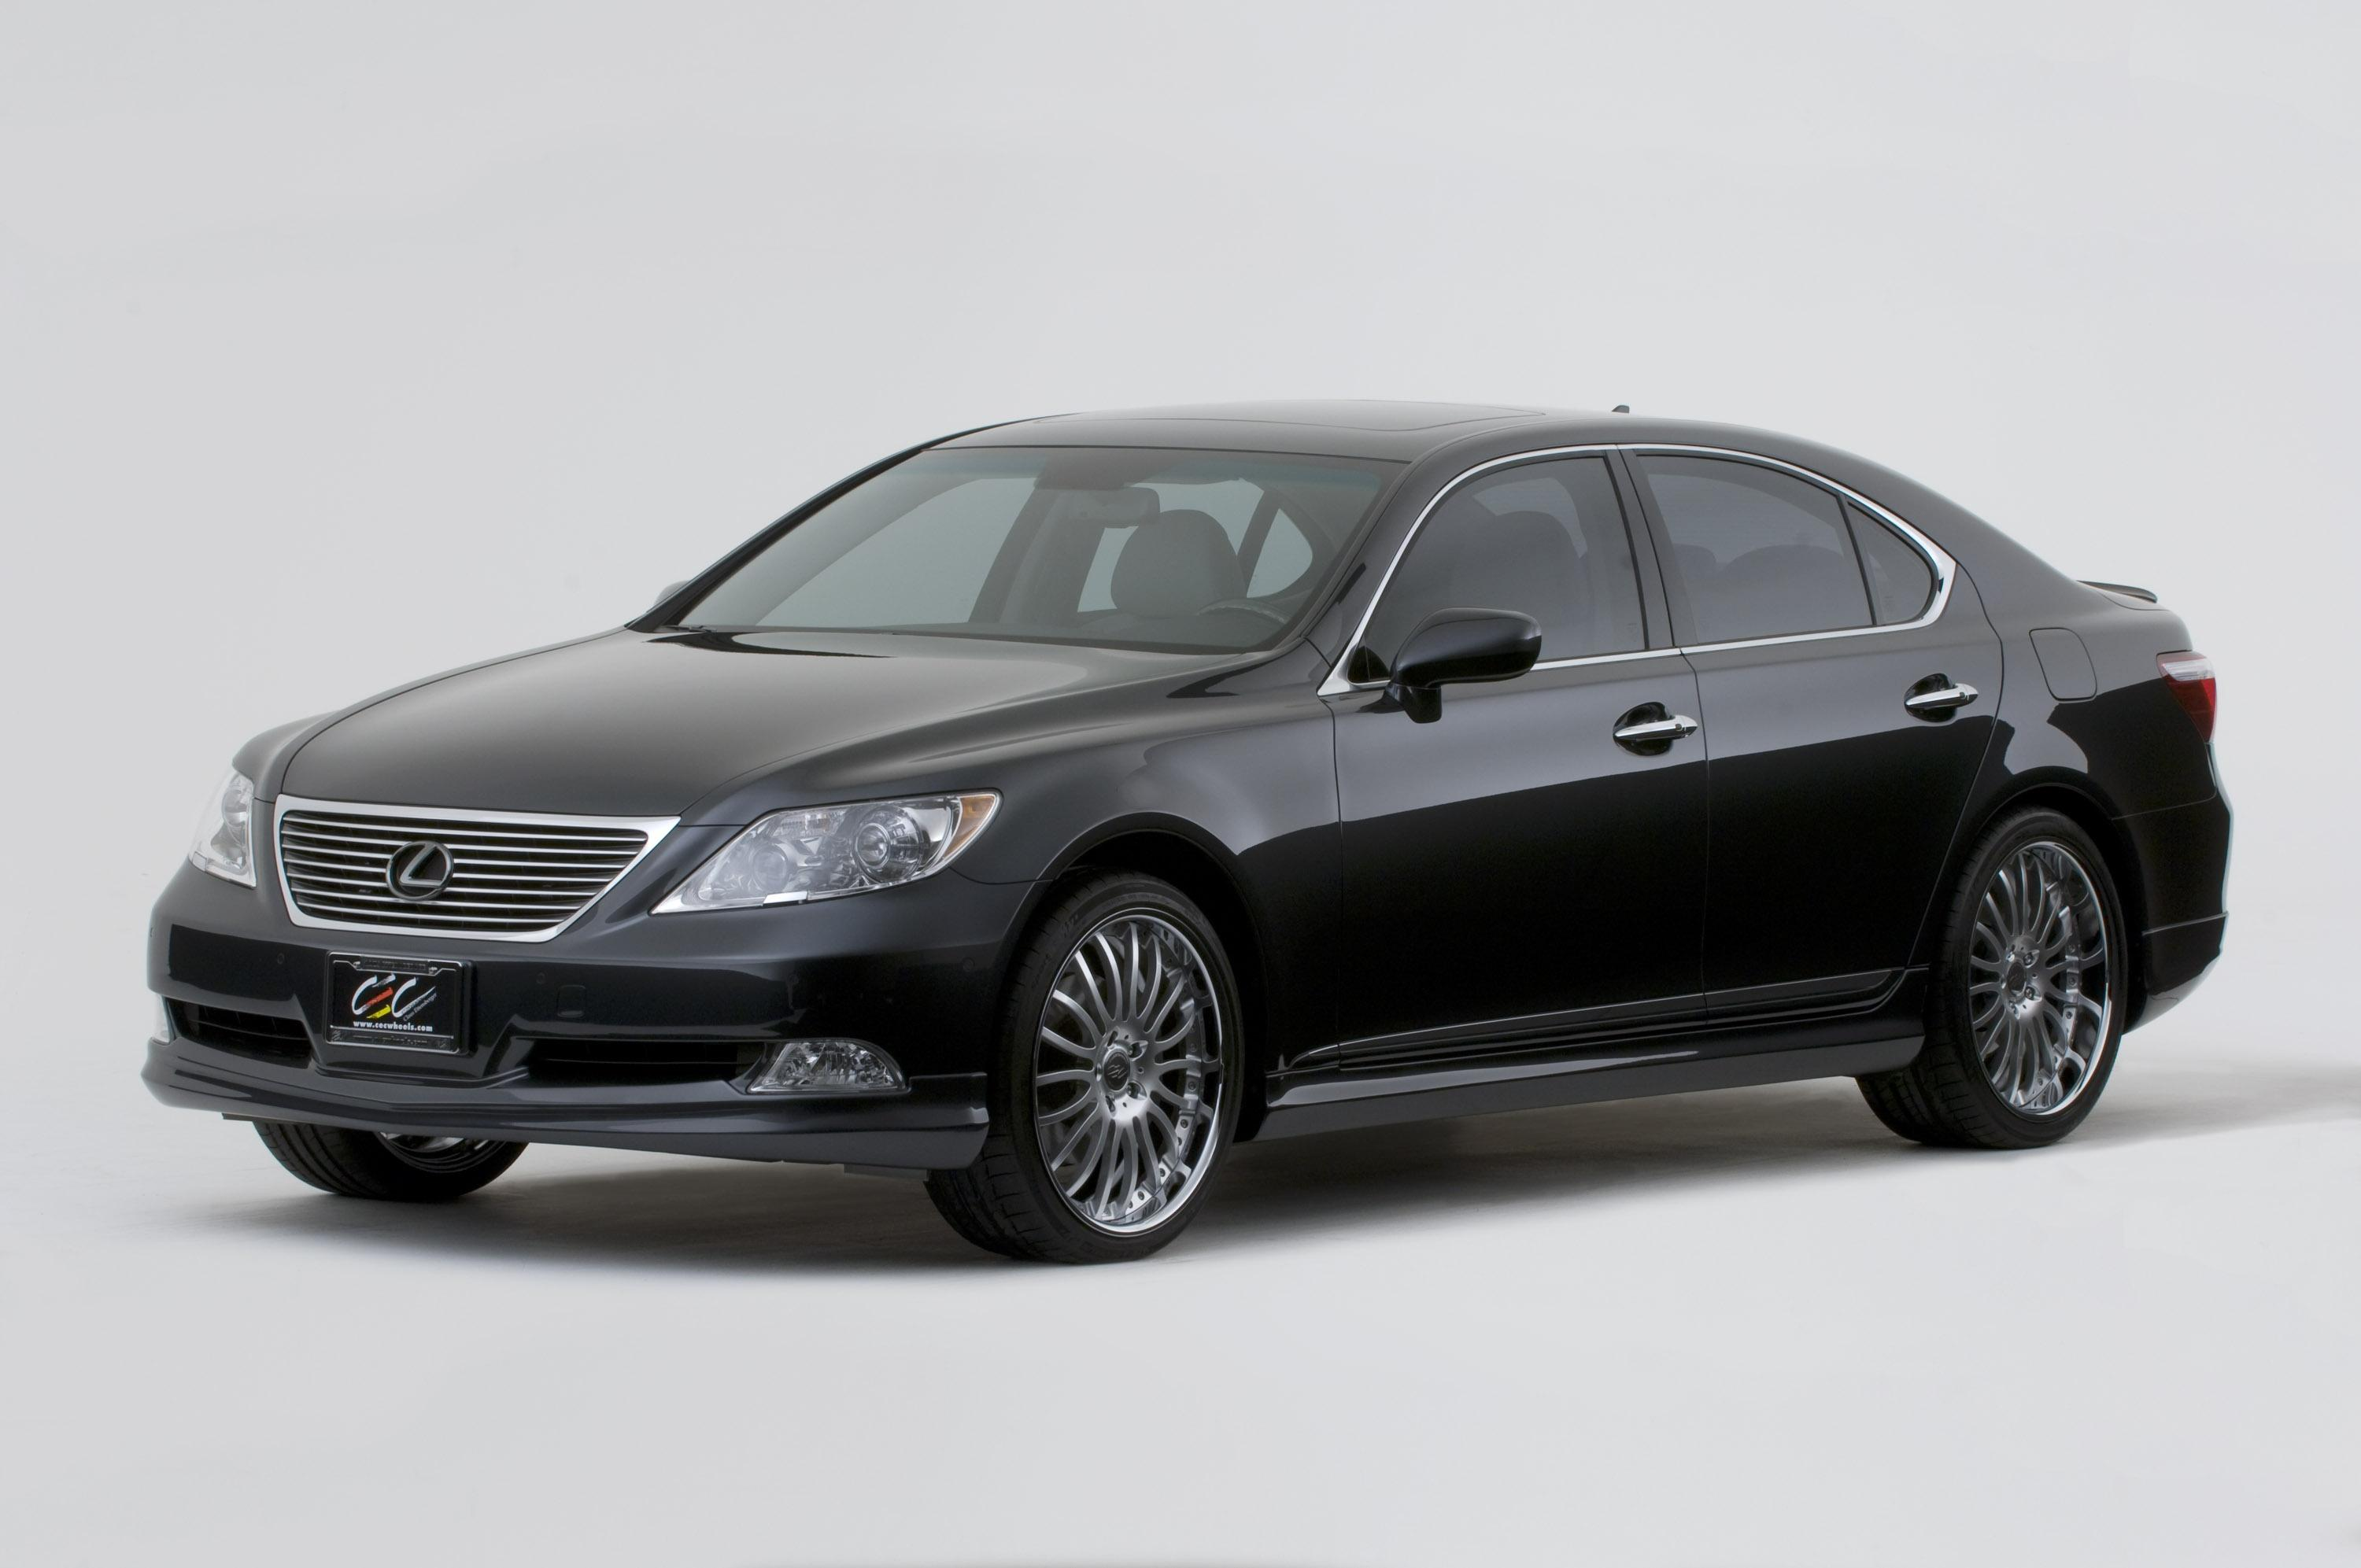 2007 lexus ls 460 by cec wheels pictures photos wallpapers top speed. Black Bedroom Furniture Sets. Home Design Ideas